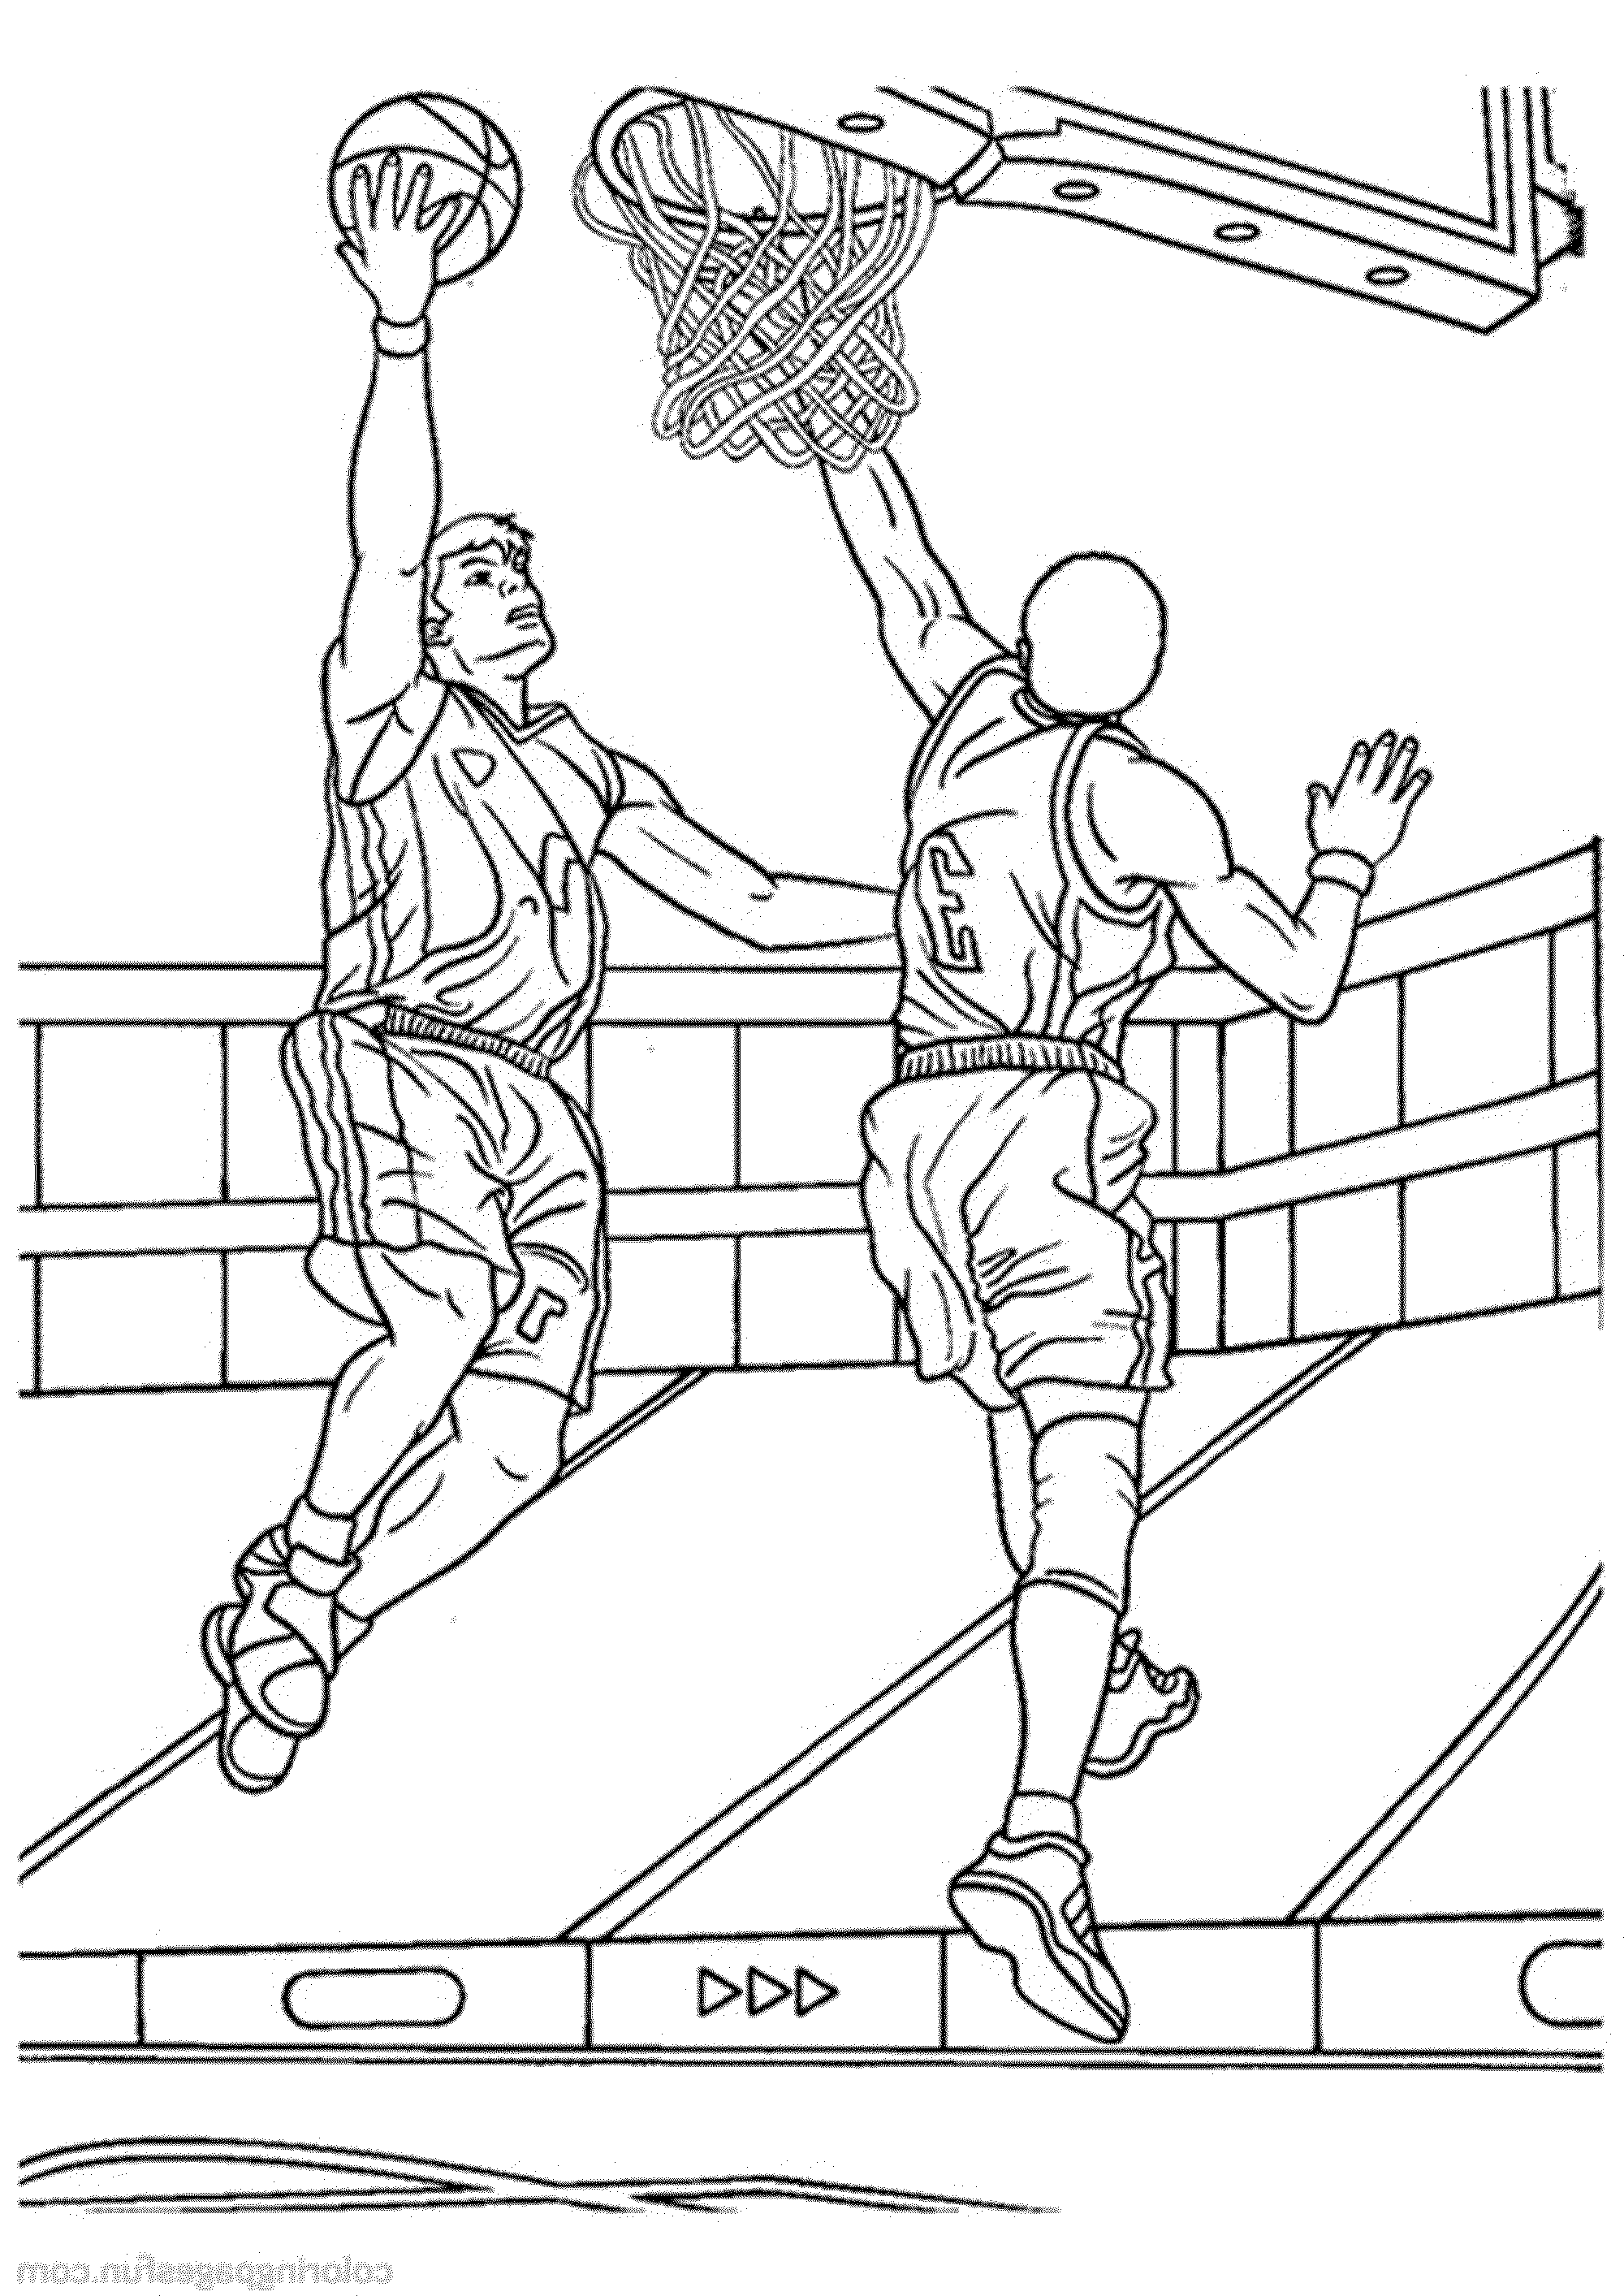 coloring pages of basketball 30 free printable basketball coloring pages pages of coloring basketball